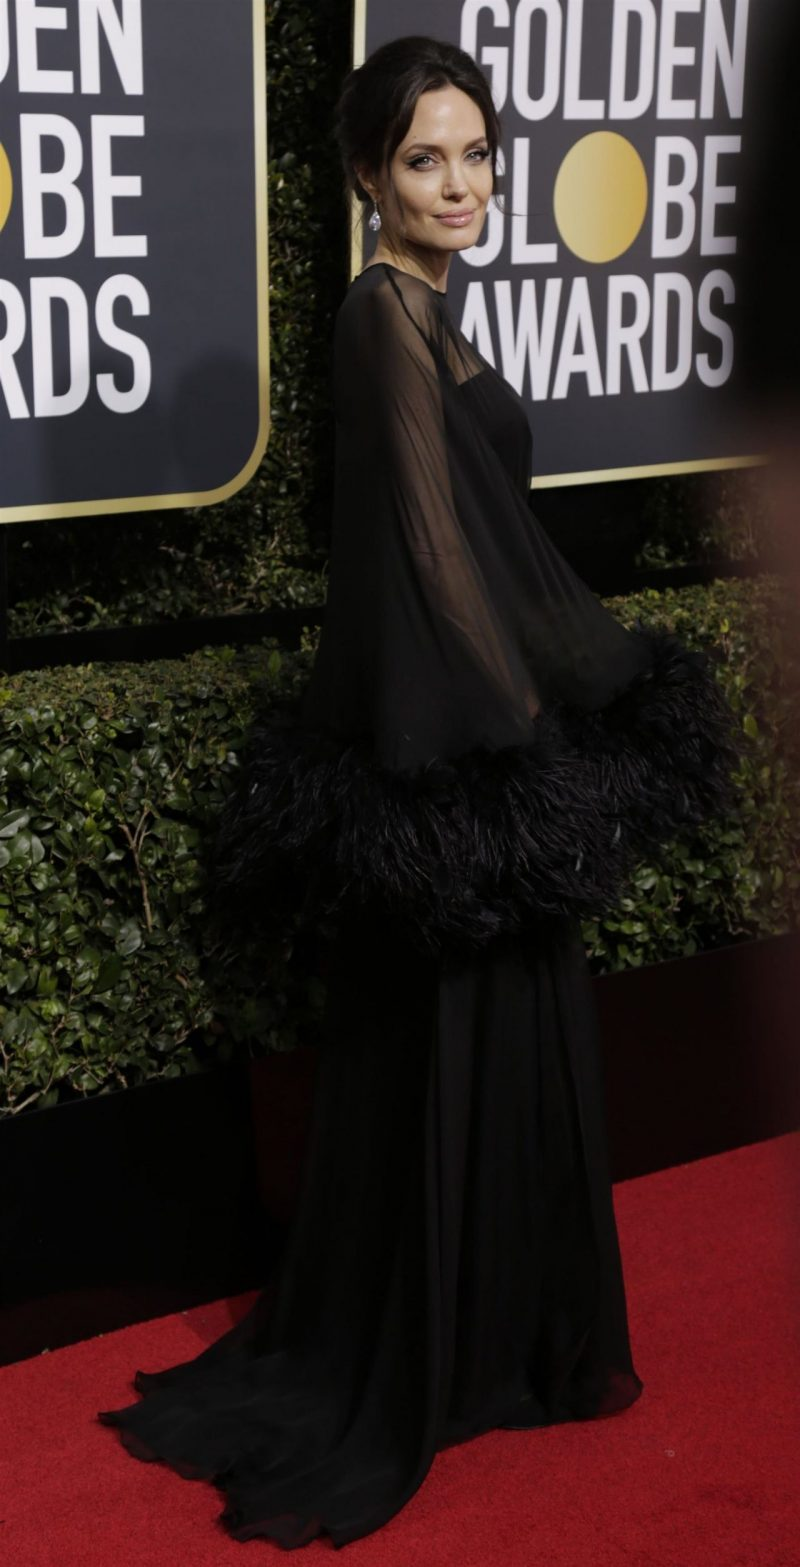 angelina-jolie-golden-globe-awards-2018-4